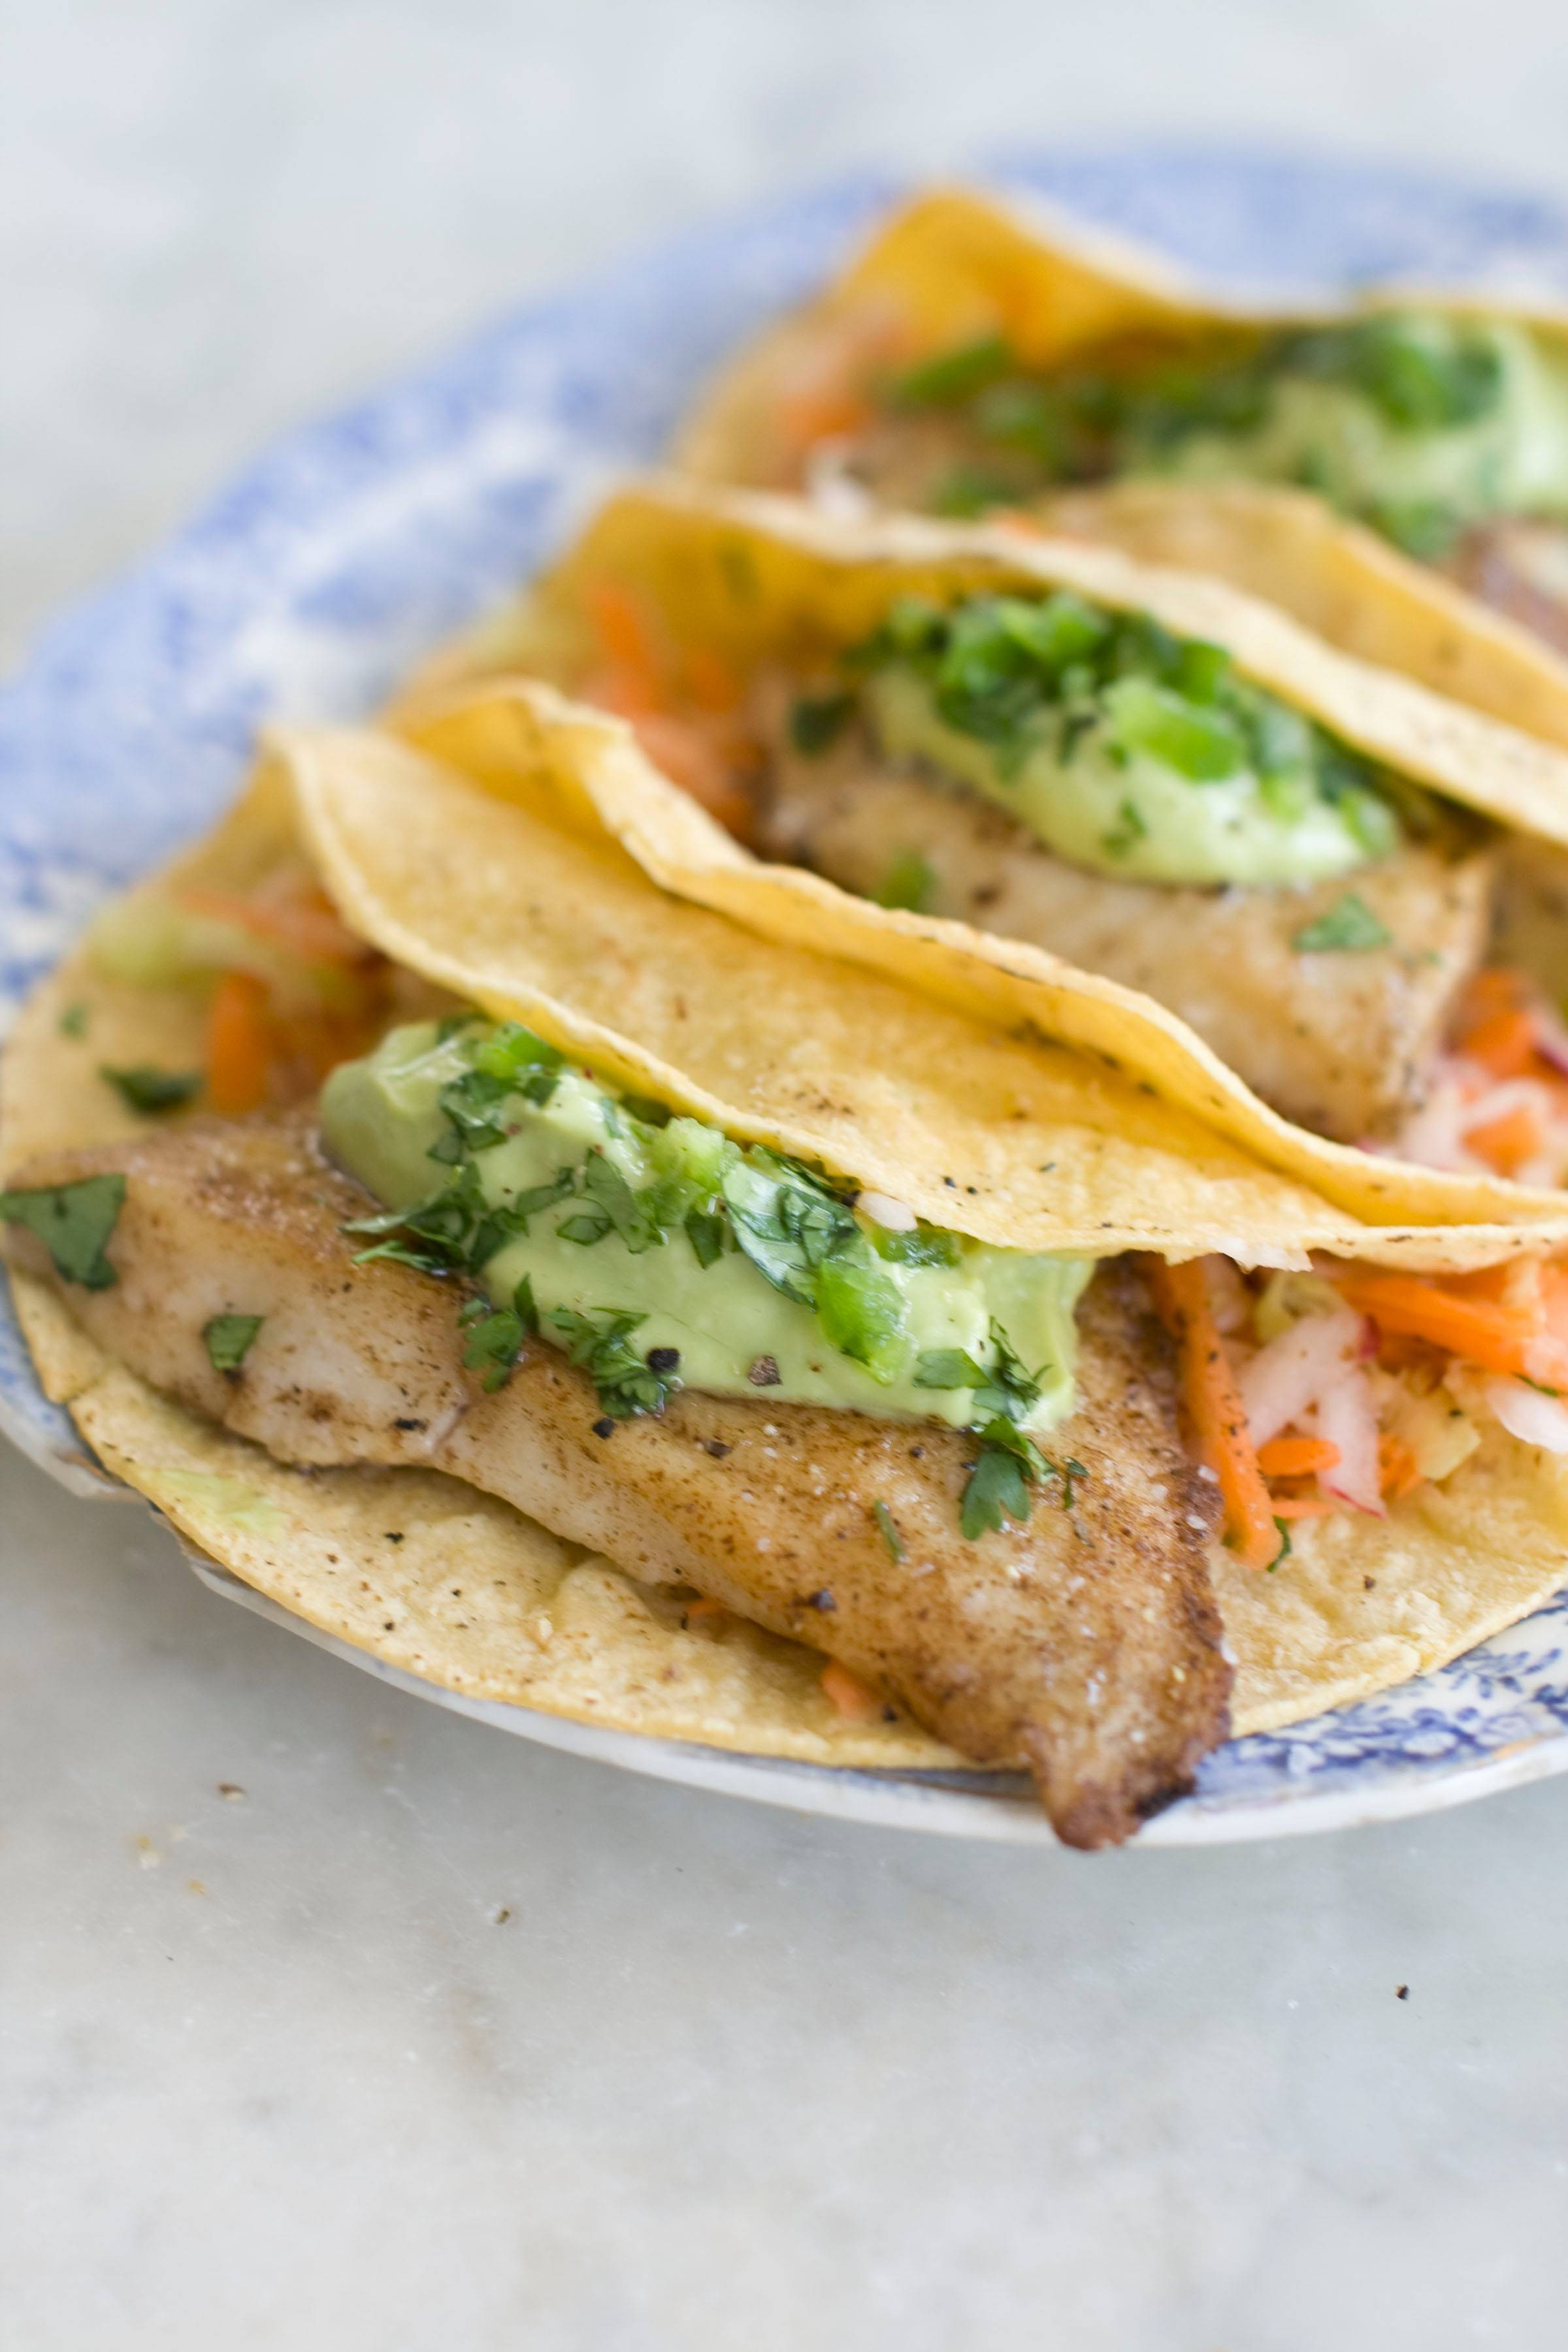 Avocado cream adds to fish tacos' appeal